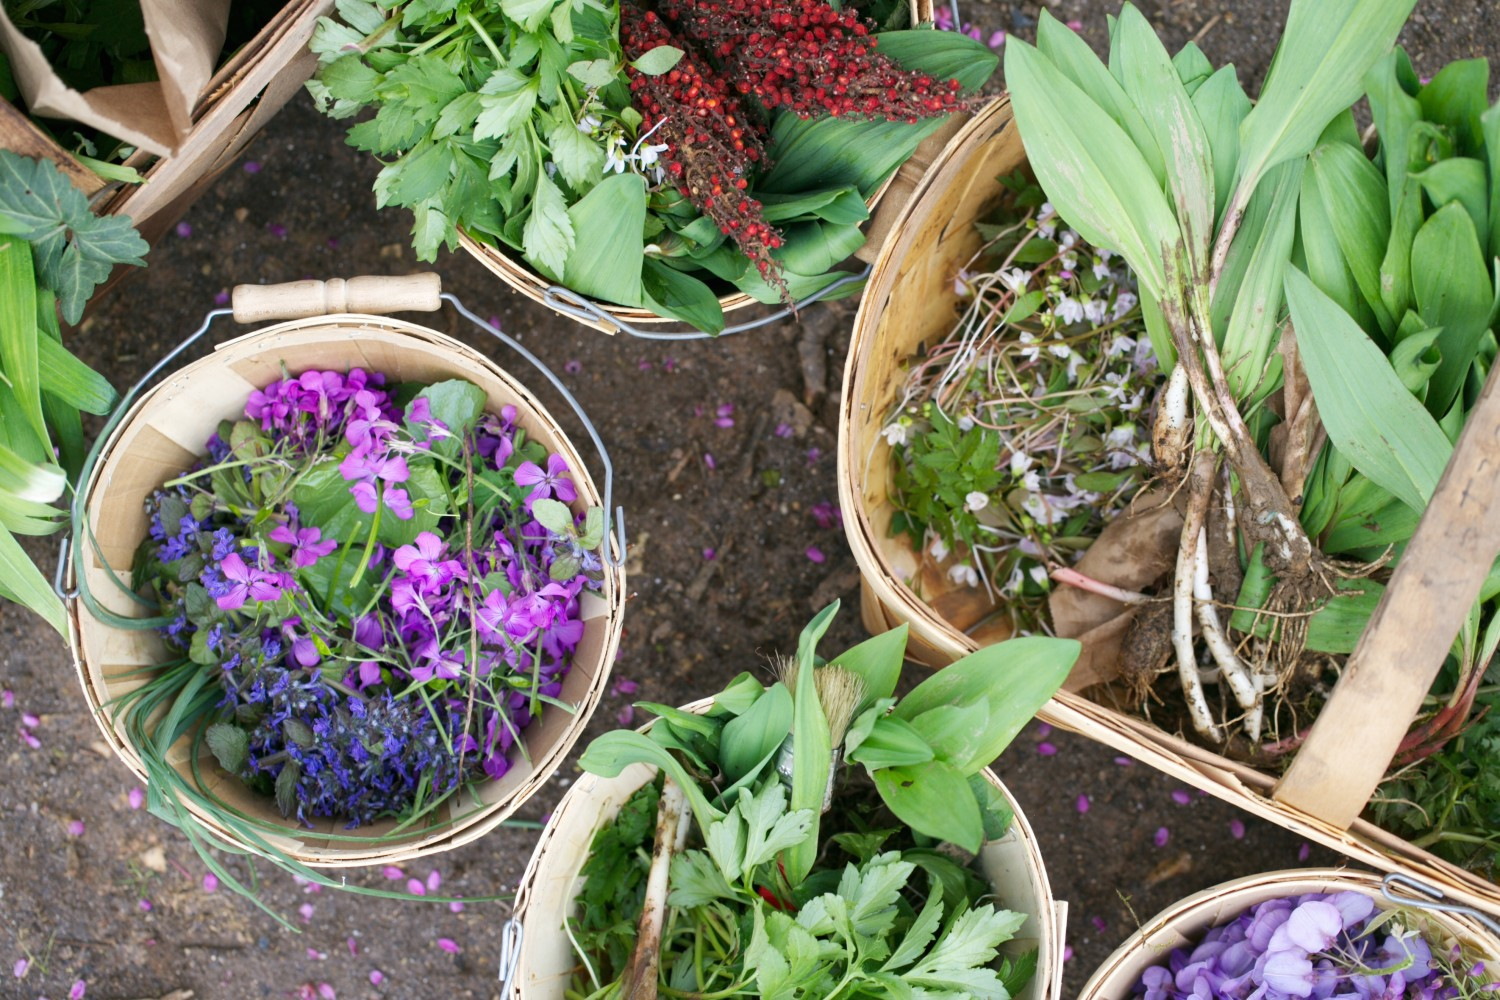 Baskets full of foraged plants. (Courtesy of Salad for President)